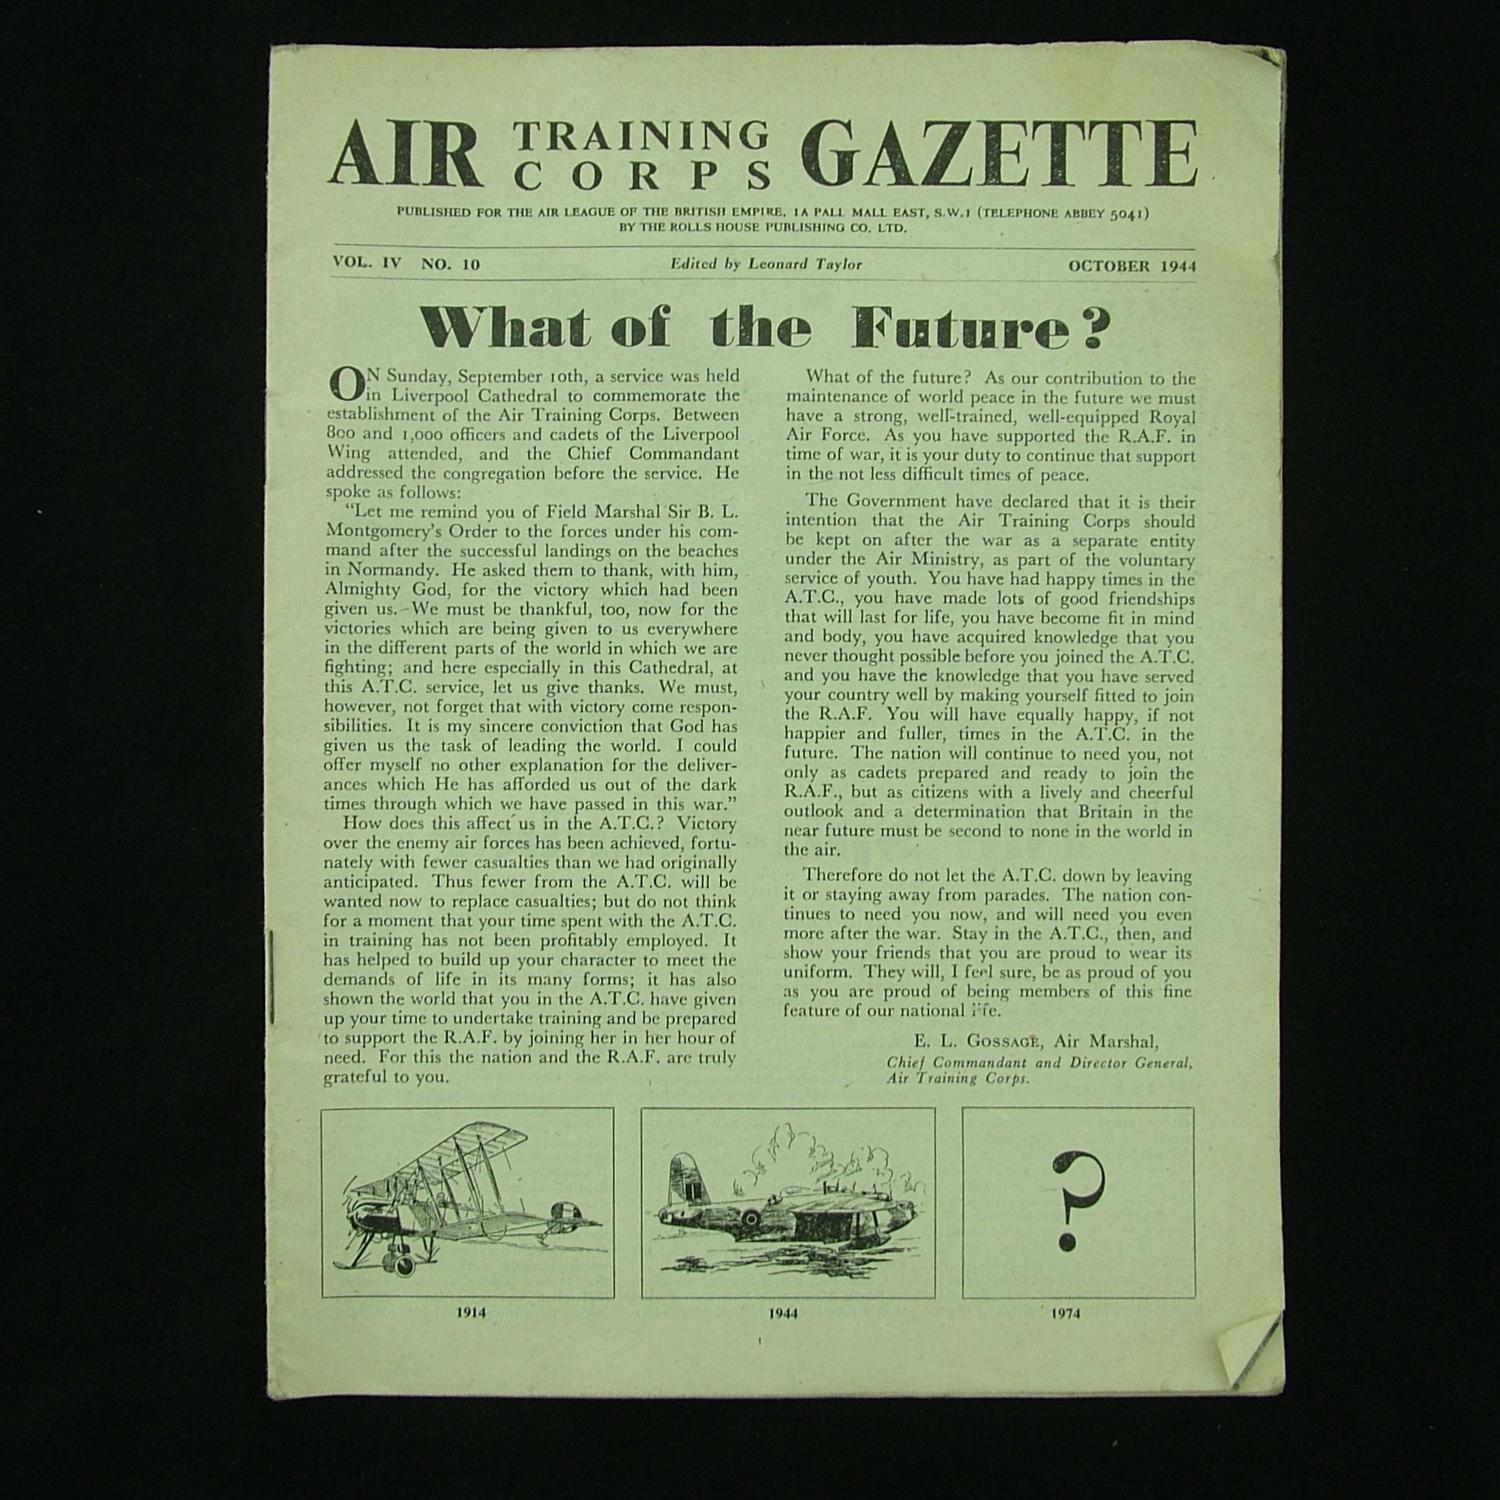 Air Training Corps Gazette